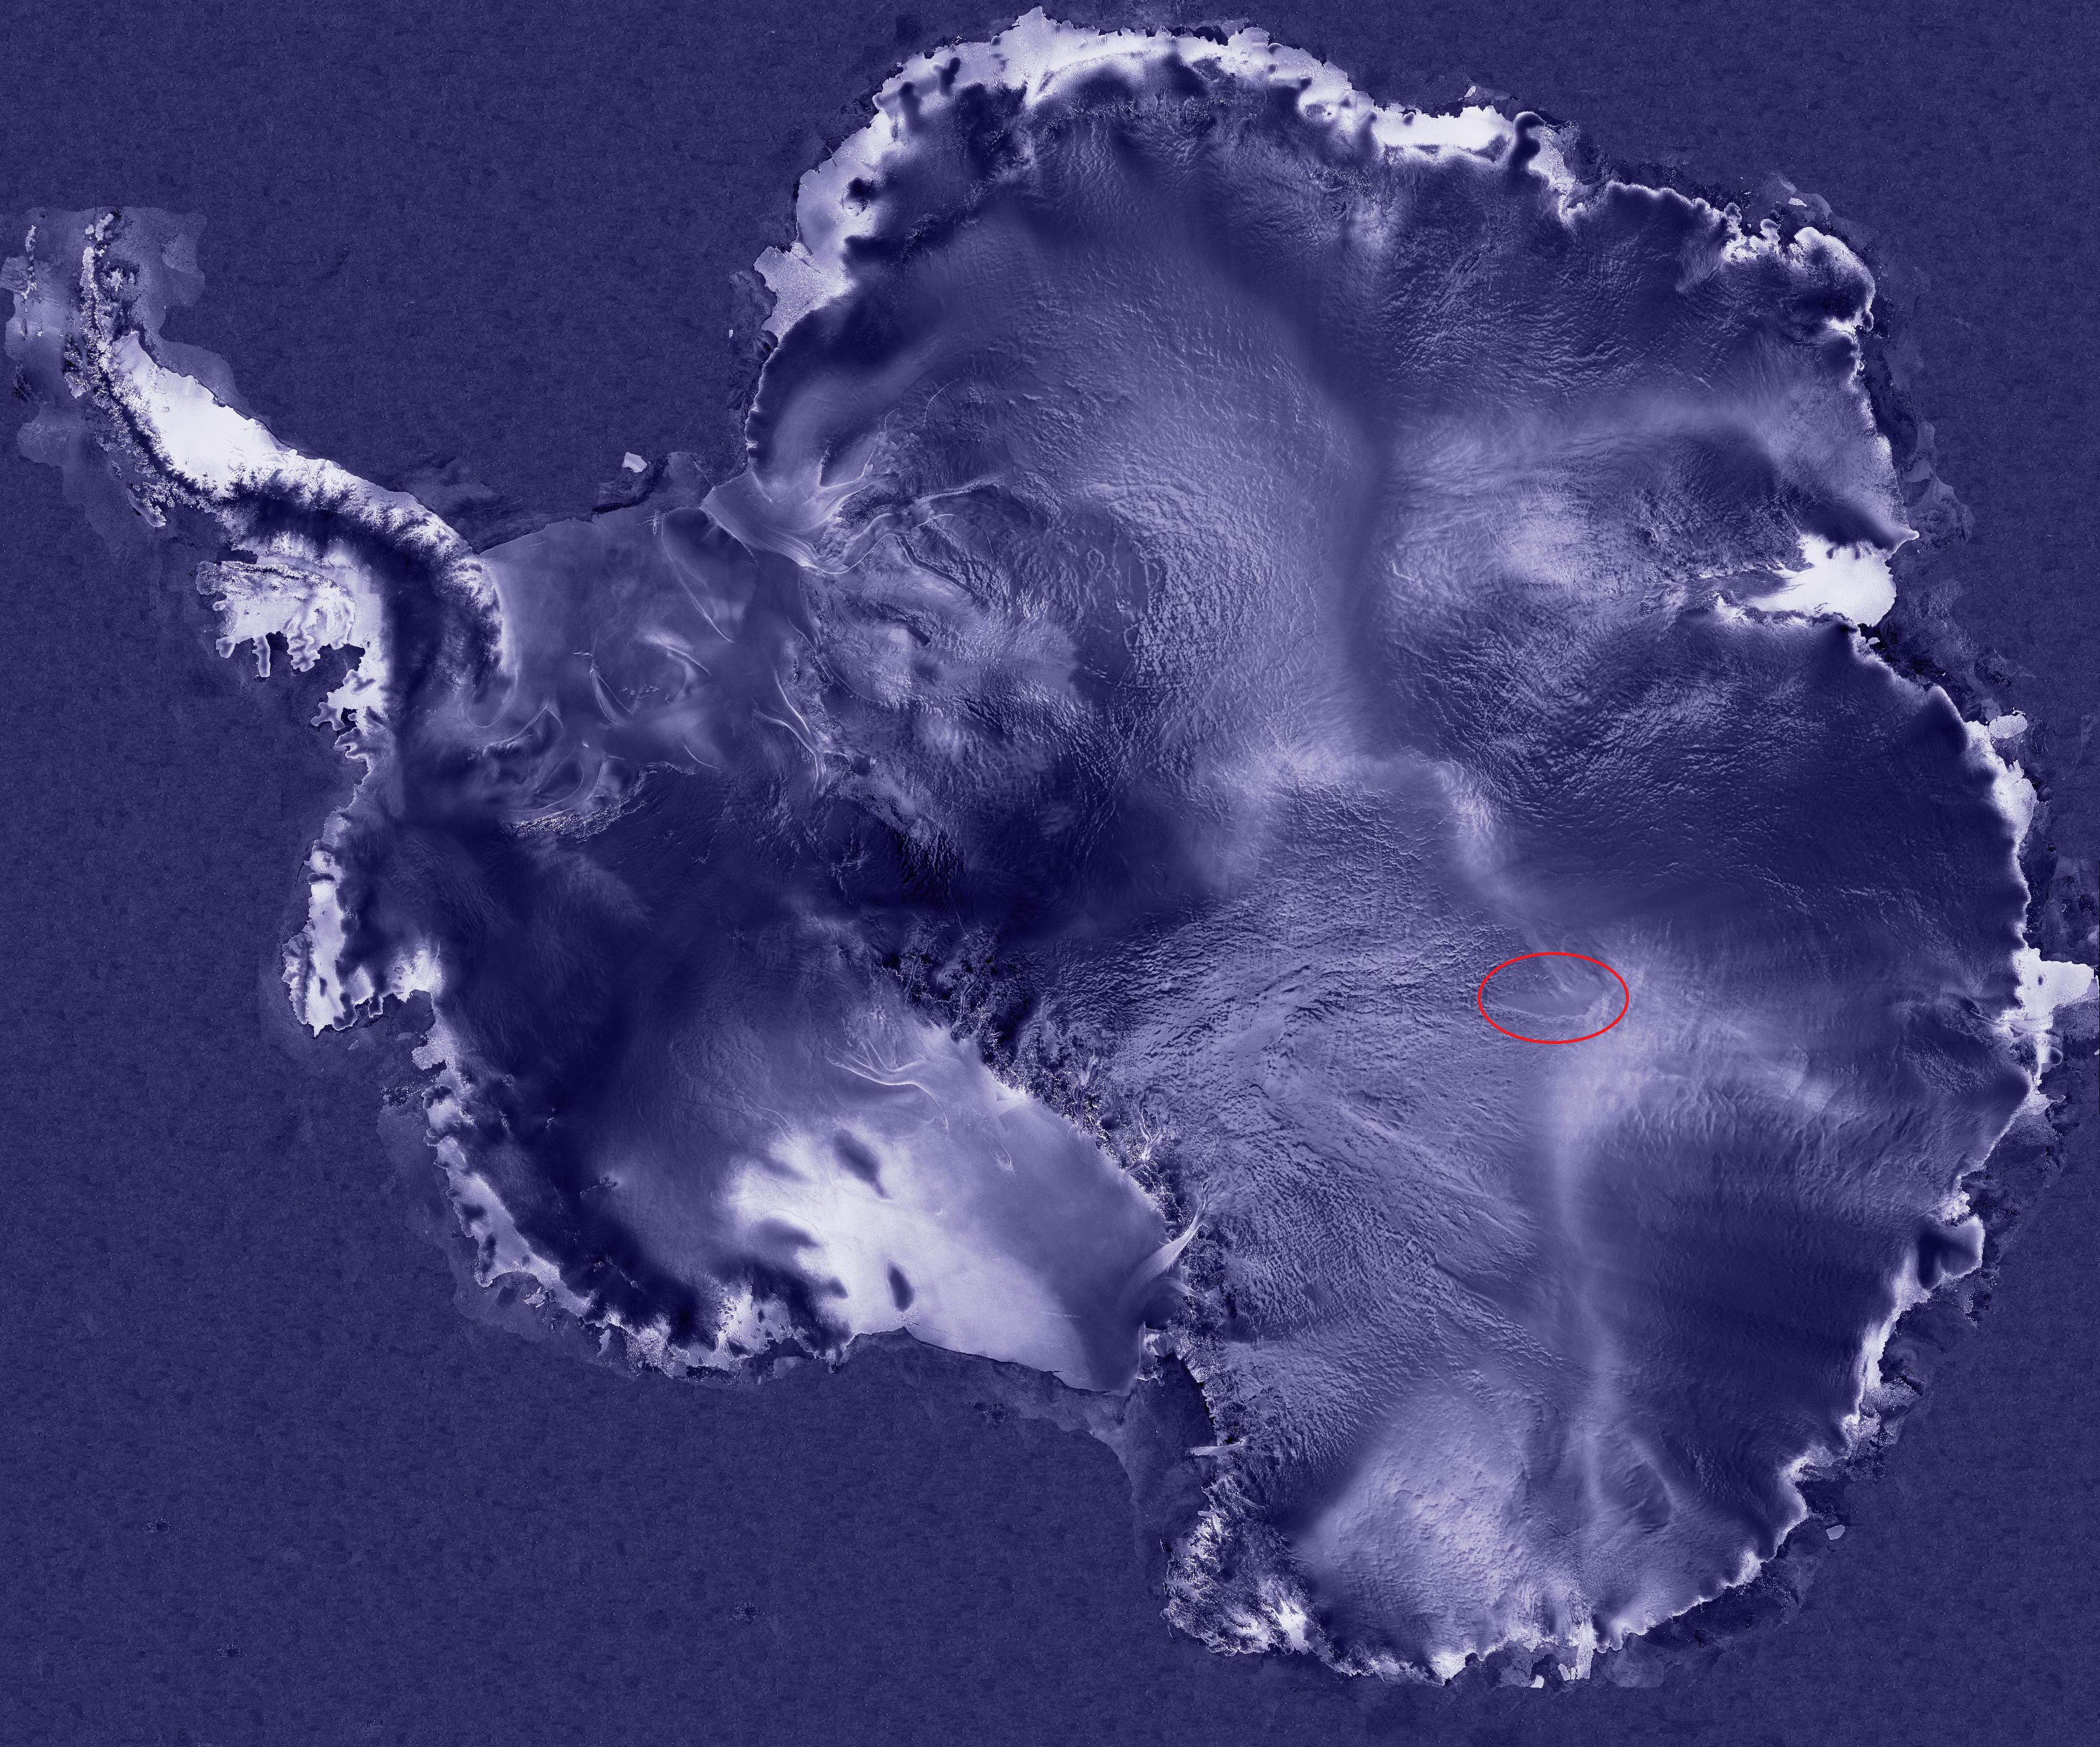 nasa antarctica - photo #6